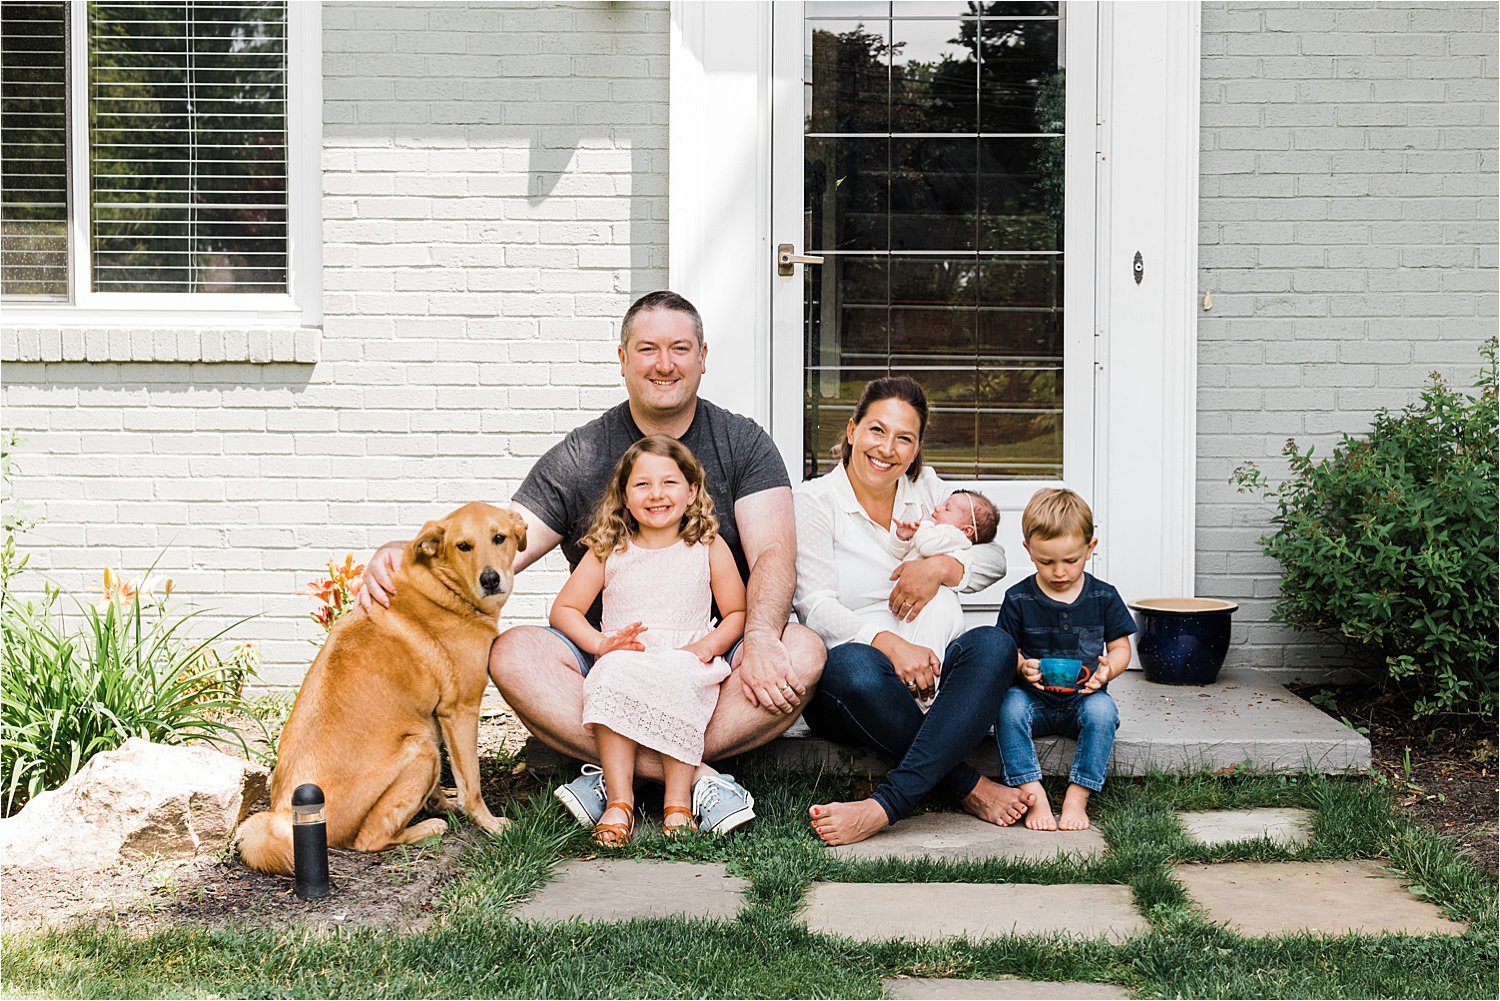 new family photo with dog in front of house